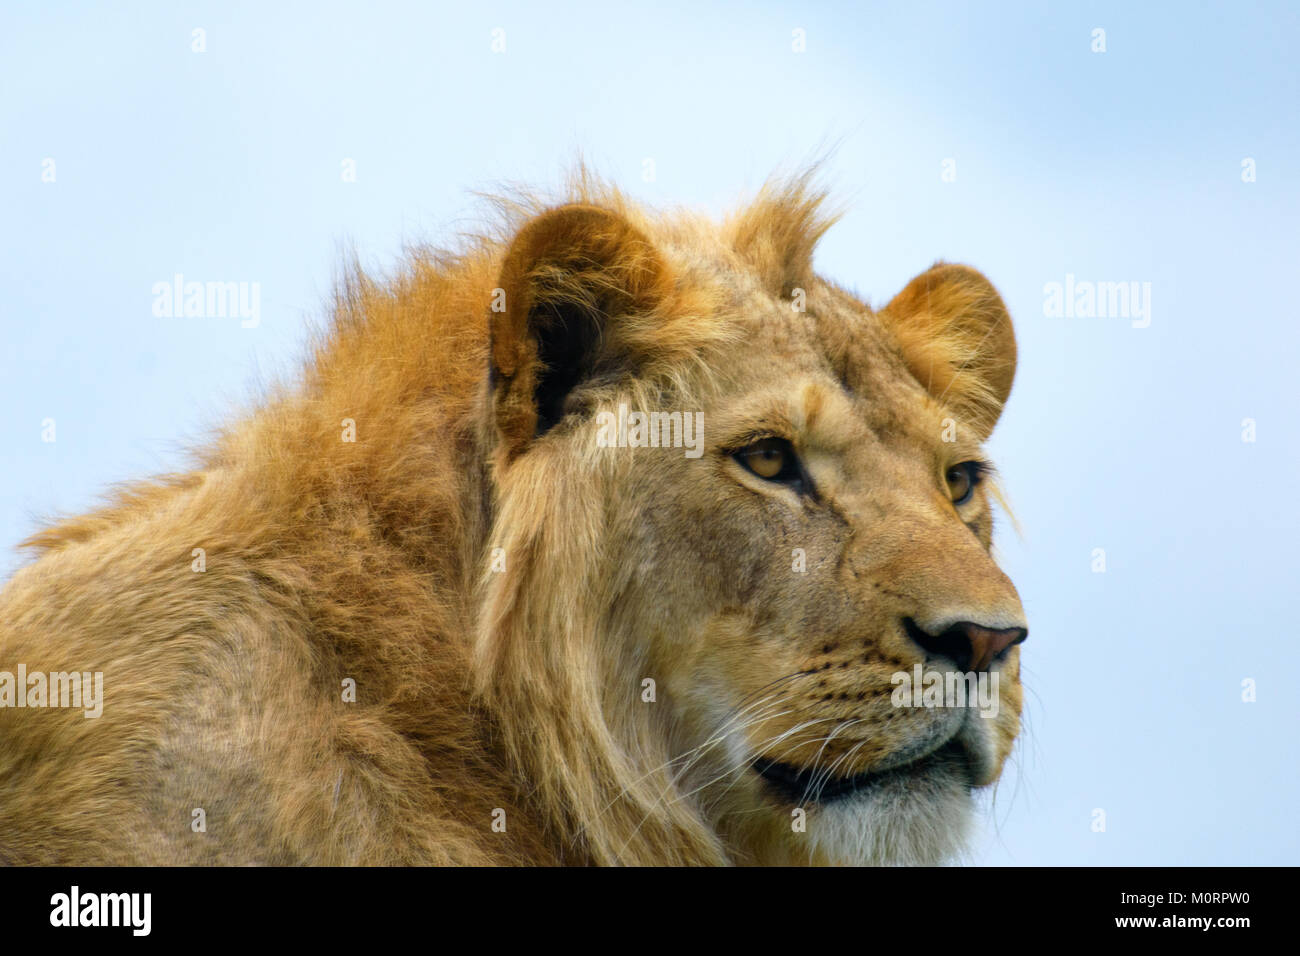 close up portrait of a young lion - Stock Image